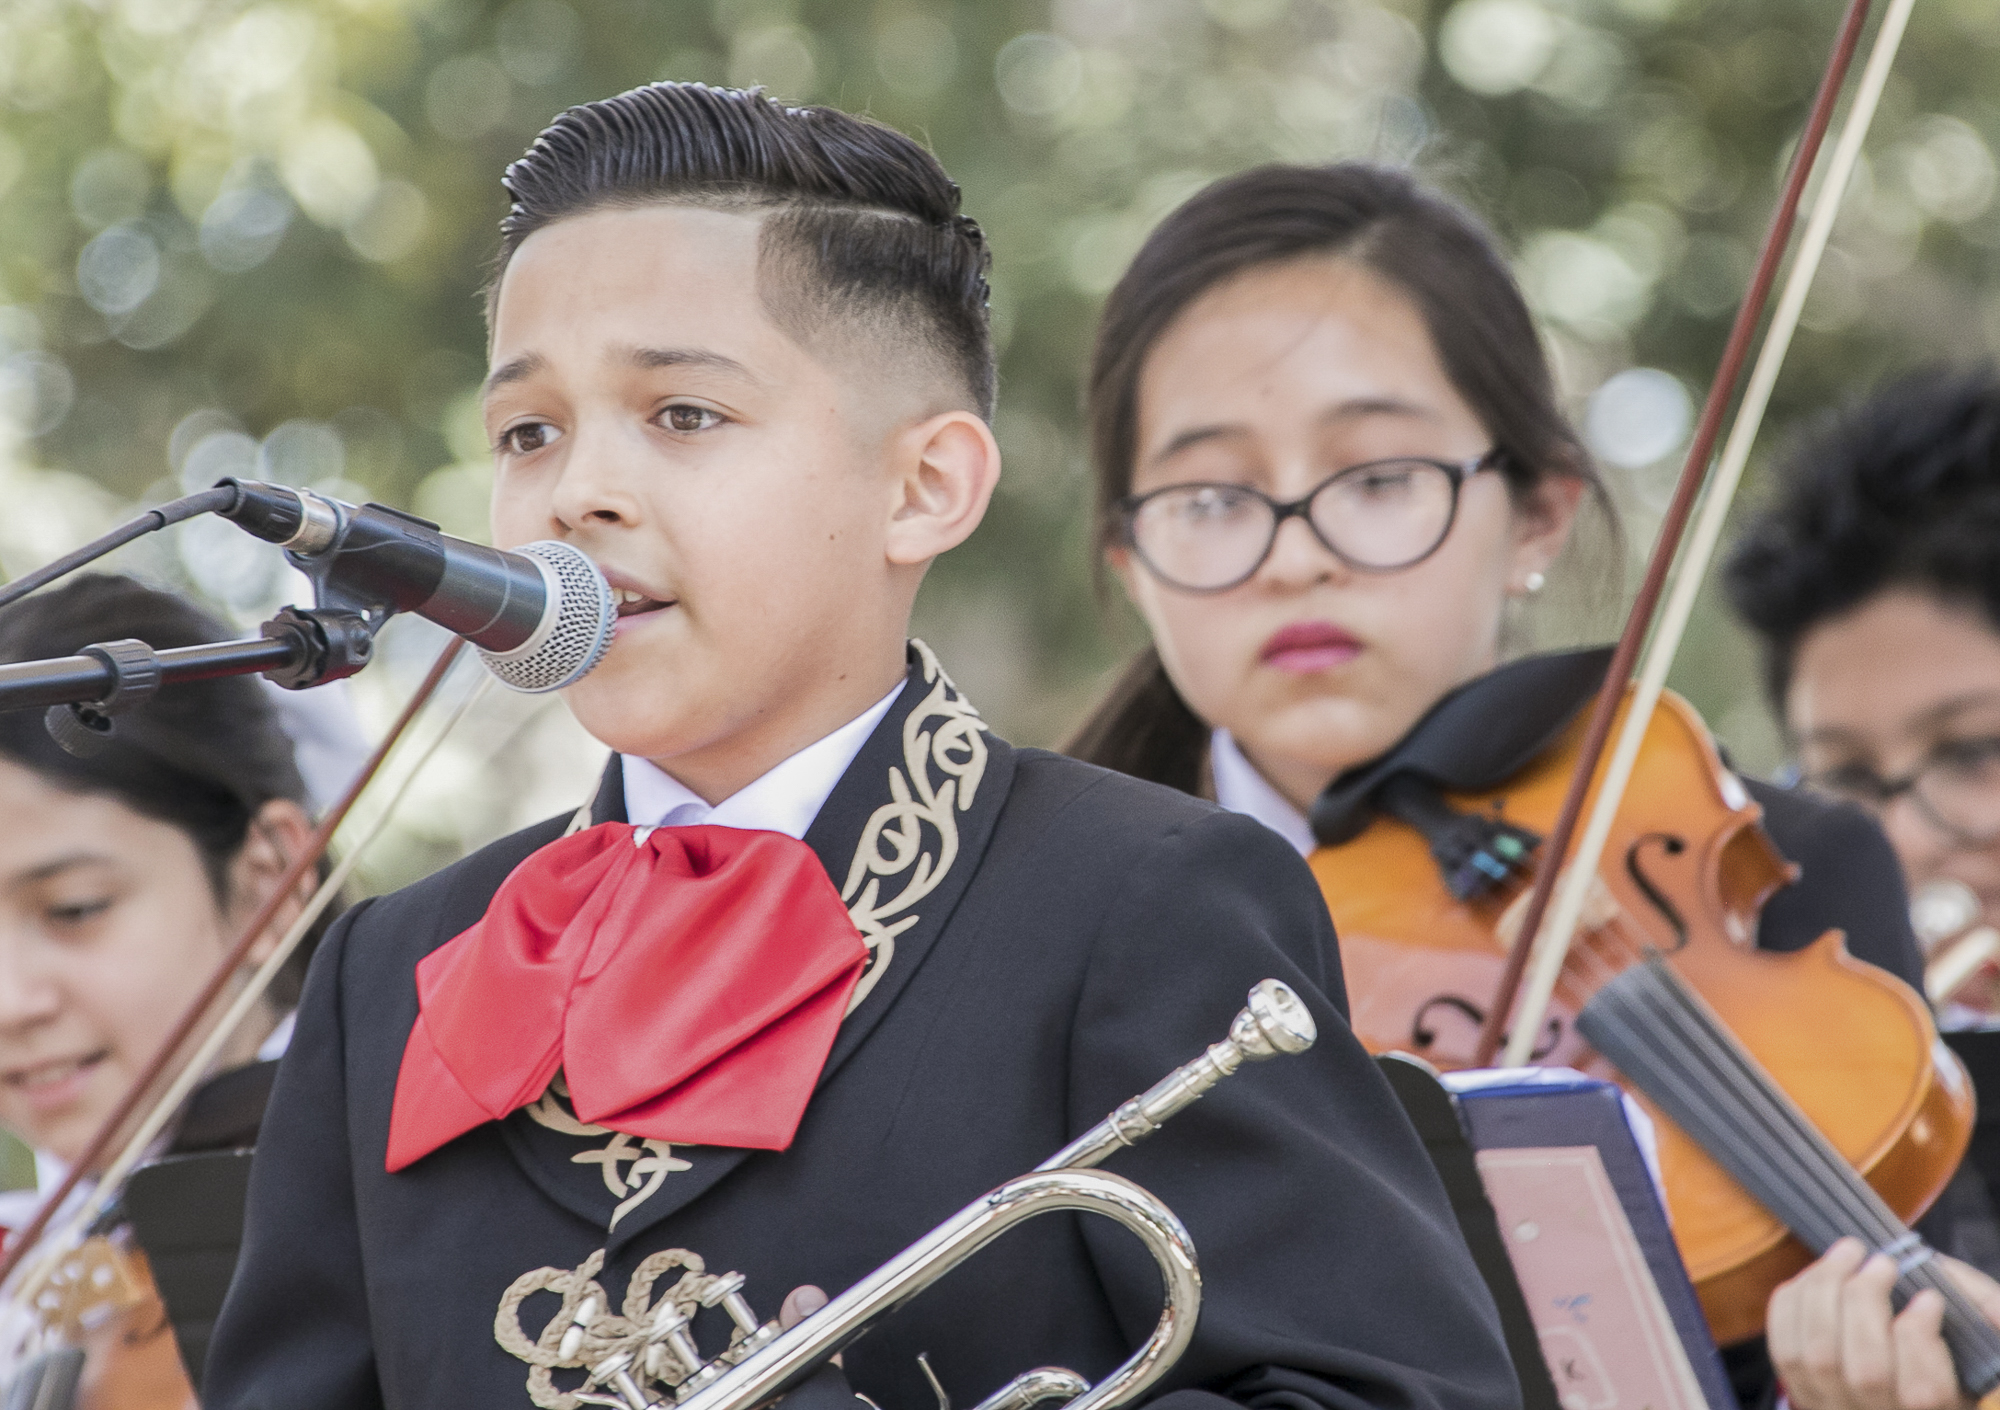 The mariachi band for Cinco De Mayo celebrations at El Pueblo de Los Angeles Historic Monument at Olvera Street on May 5th, 2018 was performed by students from a local middle school.  (Downtown, Los Angeles, California, Saturday, May 5th, 2018.) (Ashutosh Bikram Singh/Corsair Photo)